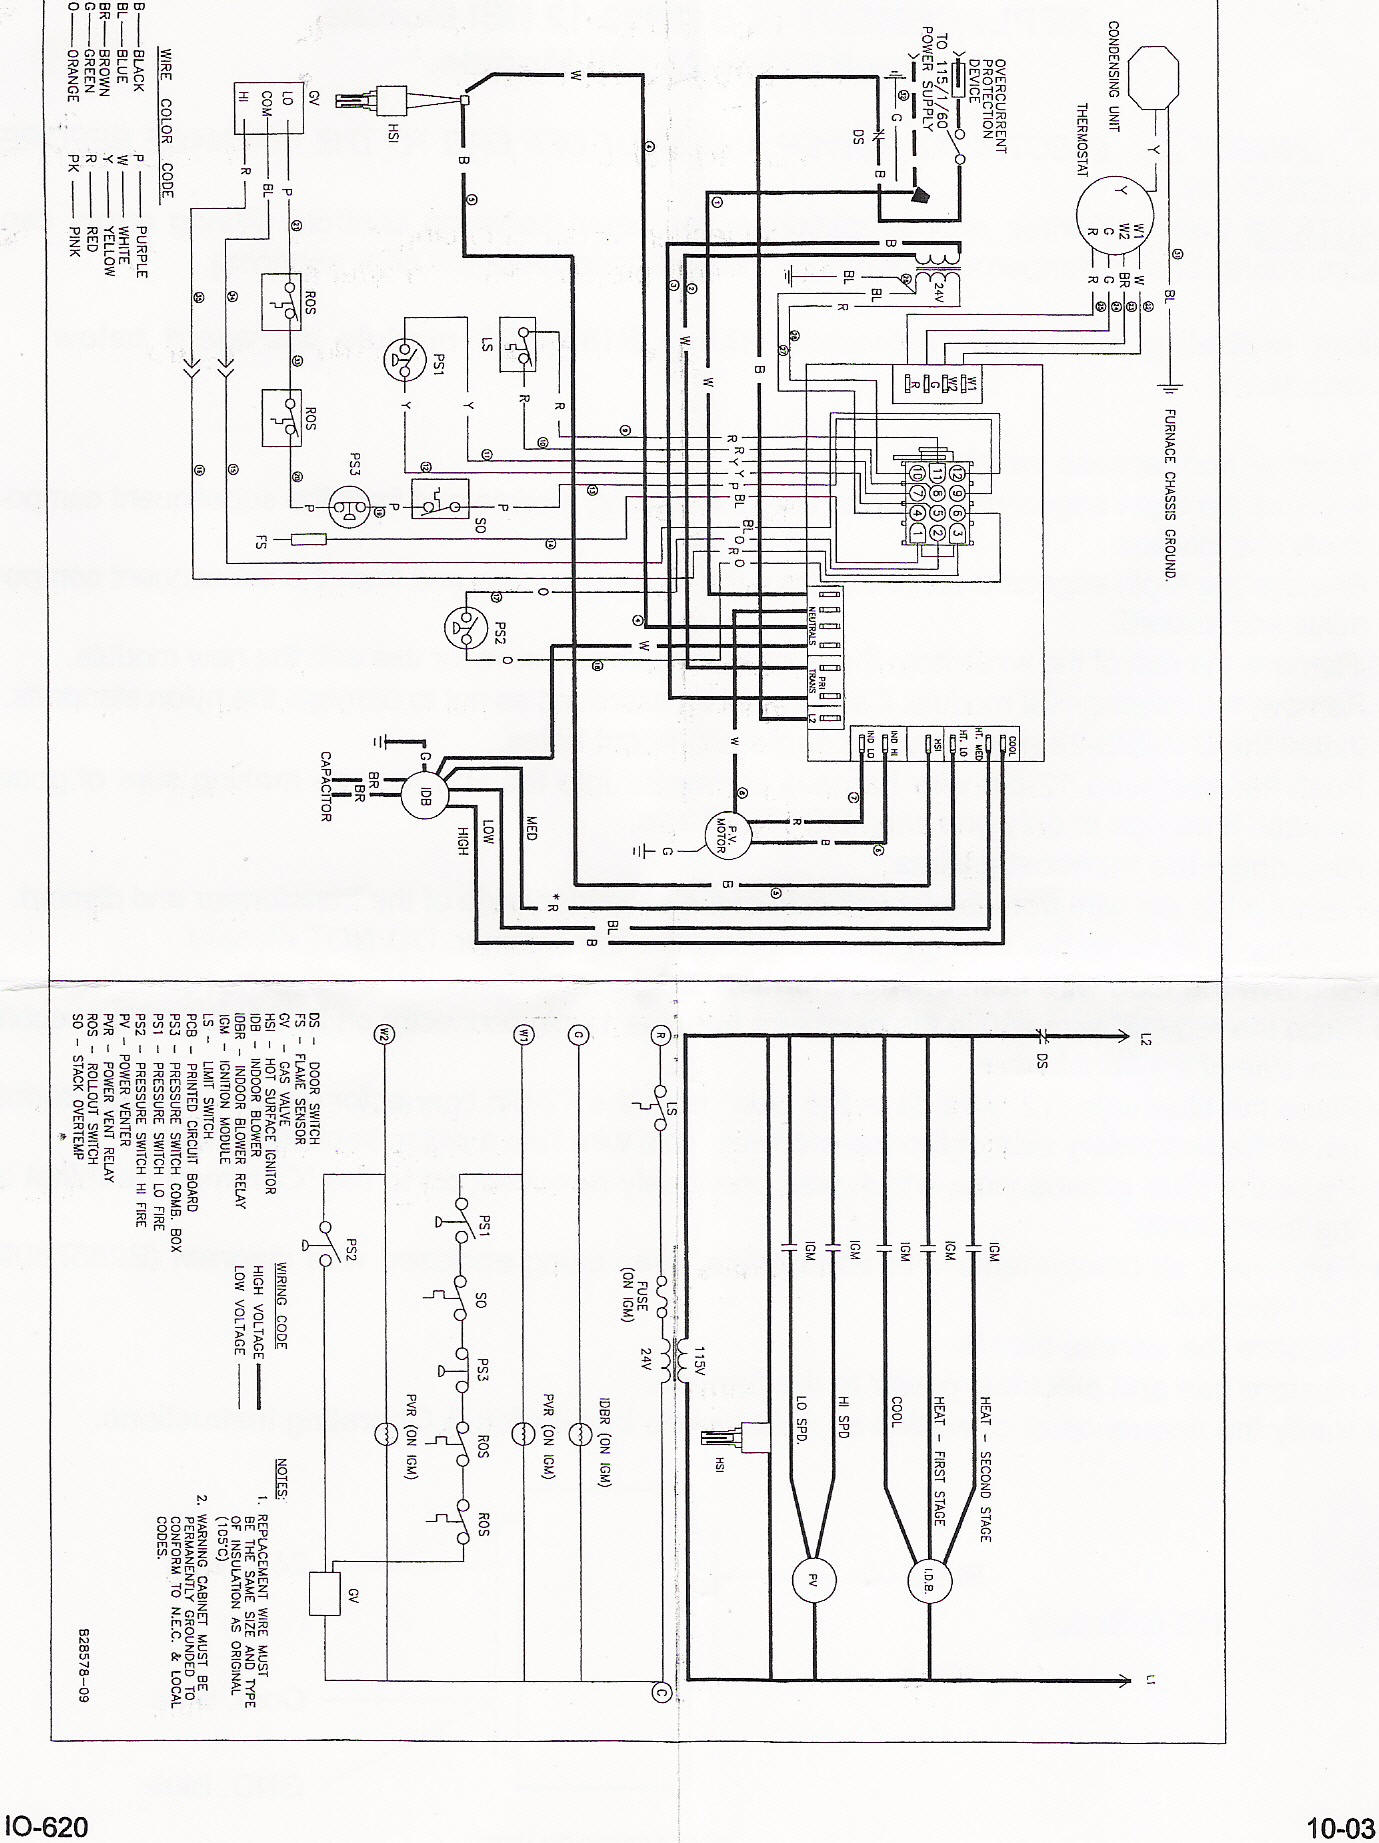 goodma2 instr goodman control board b18099 23 instructions heil air conditioner wiring diagram at panicattacktreatment.co